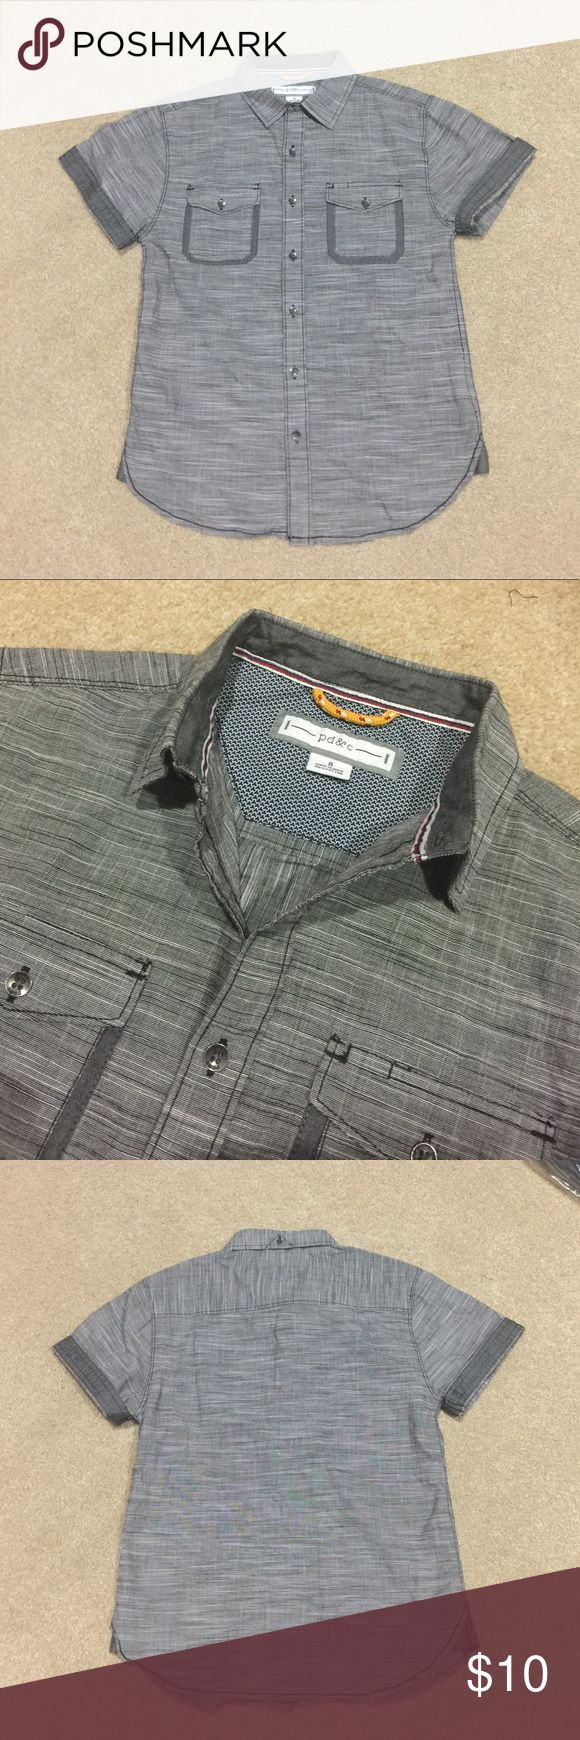 NWOT Boy's PD&C Shirt NWOT, Boy's PD&C Shirt, size 8, 100% Cotton. Brand new and never worn condition. No holes, rips, tears or stains. 20% off 3+ items in my closet. BUNDLE & SAVE! PD & C  Shirts & Tops Button Down Shirts